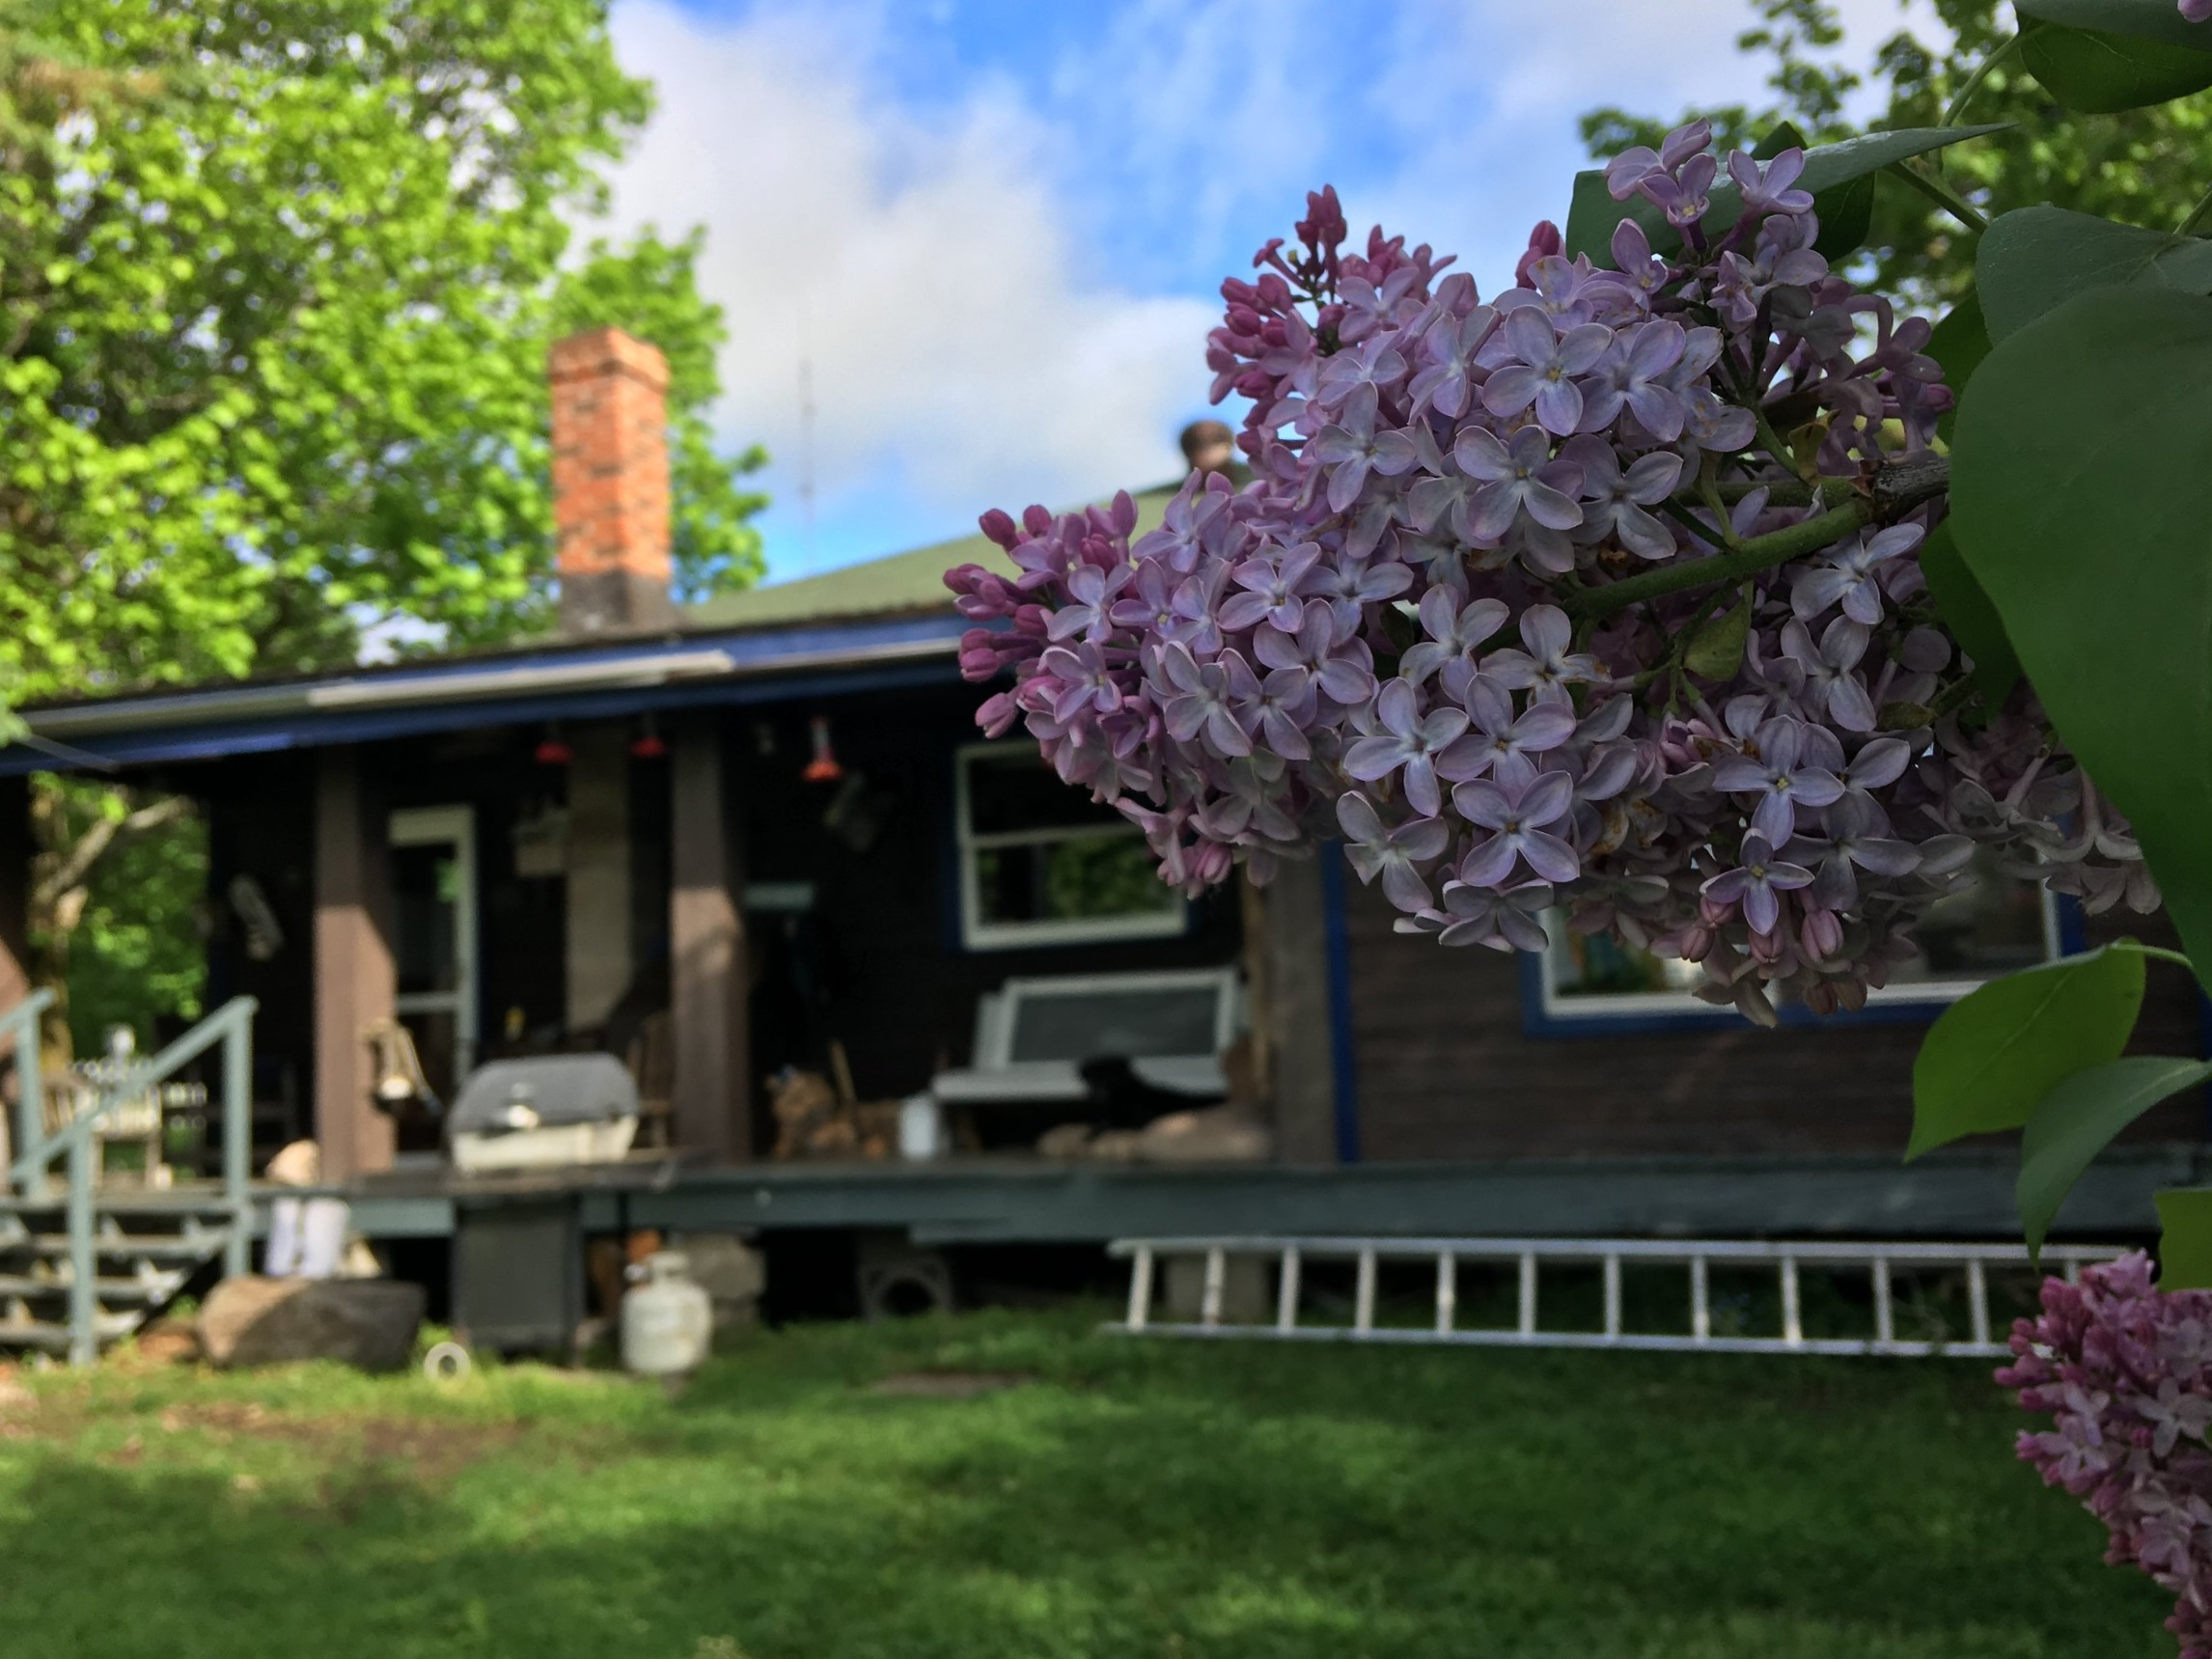 Lilacs blooming outside of Algonquin Outfitters at Brent Campground. Algonquin Provincial Park, Ontario, Canada.